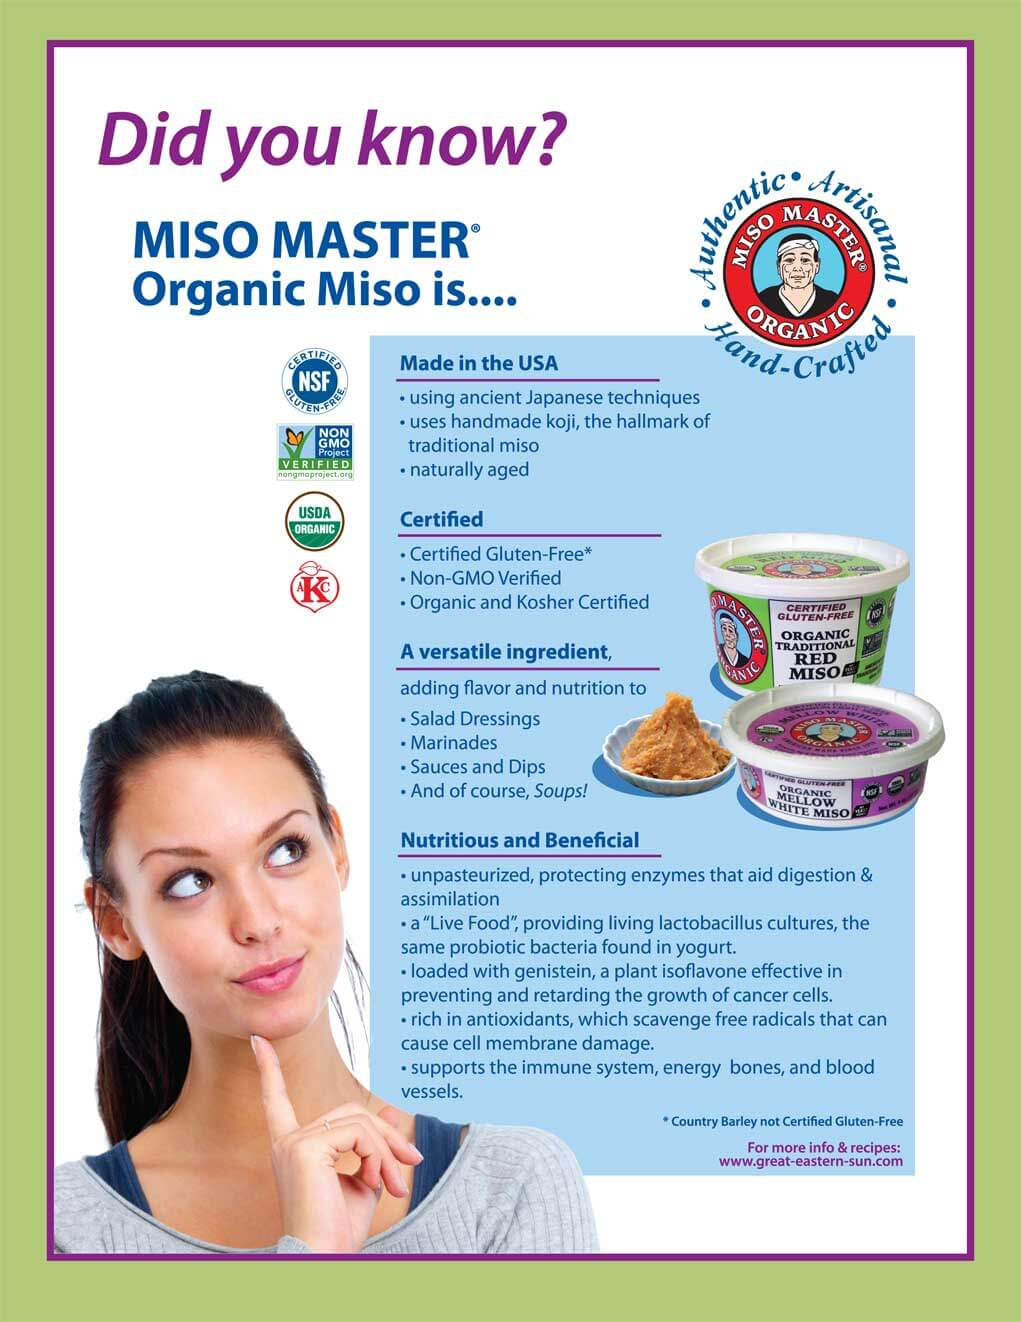 Miso Master Did you know? Flyer